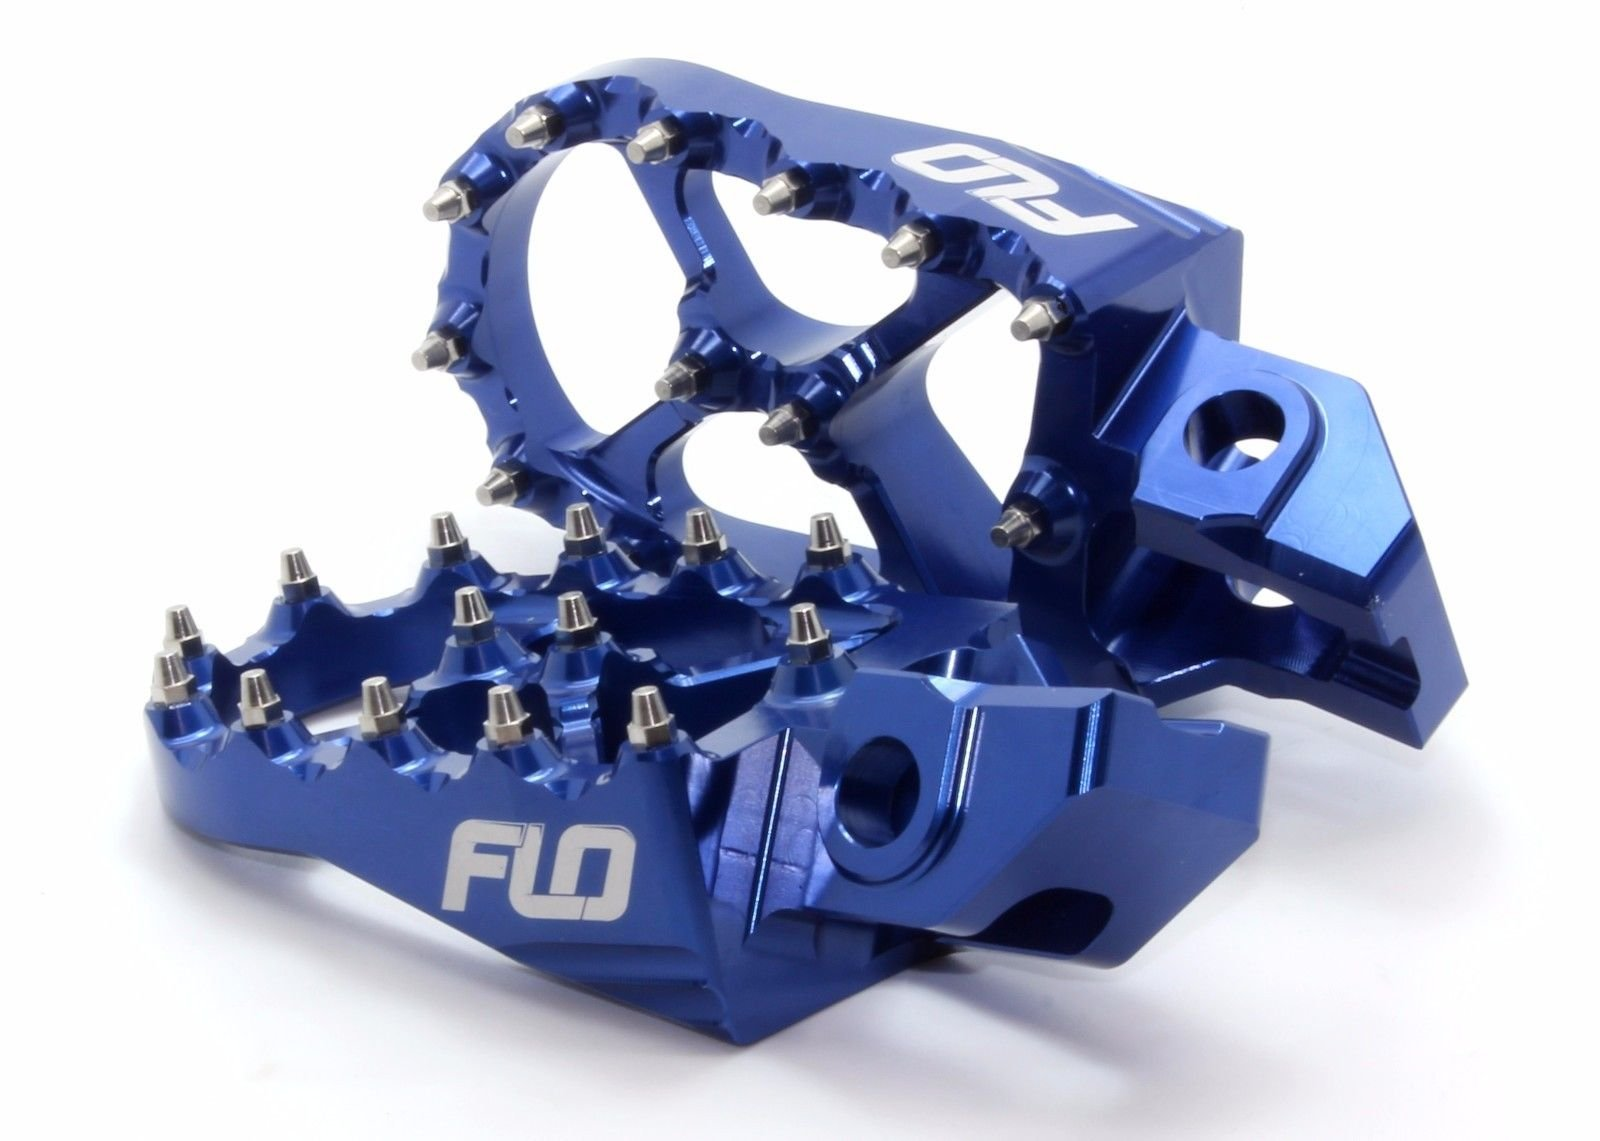 Ktm Foot Pegs Flo Motorsports for 2016 KTM Foot Pegs 125sx/150sx/ 250-450sx-f and Xc-f Blue fpeg-795-2blu by Flo Motorsports (Image #3)